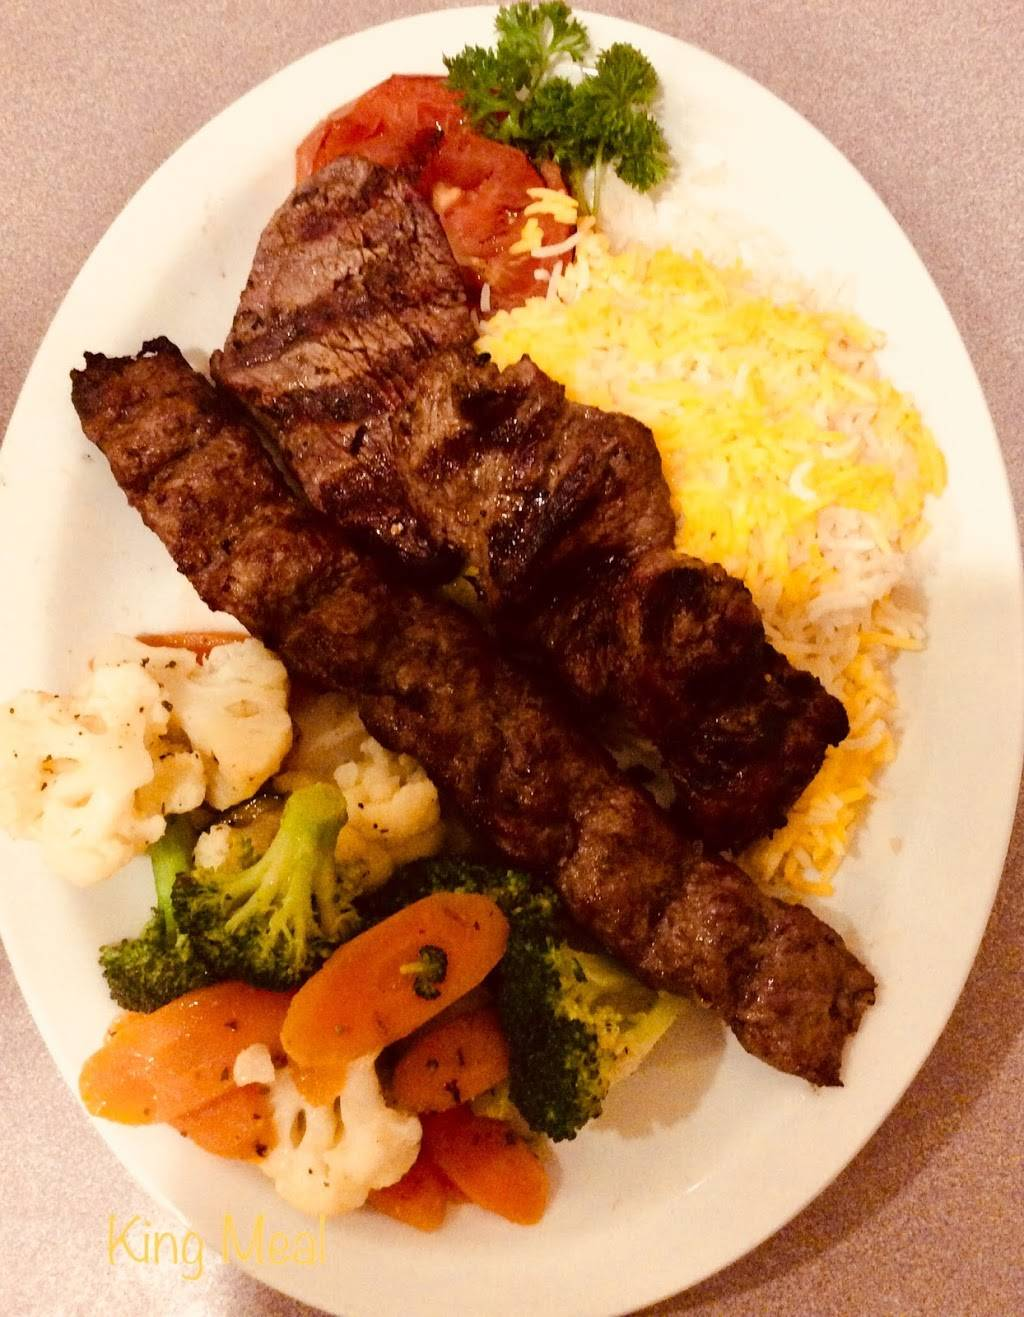 Friends Food House | restaurant | 591 The Queensway S, Keswick, ON L4P 2G3, Canada | 9054767778 OR +1 905-476-7778